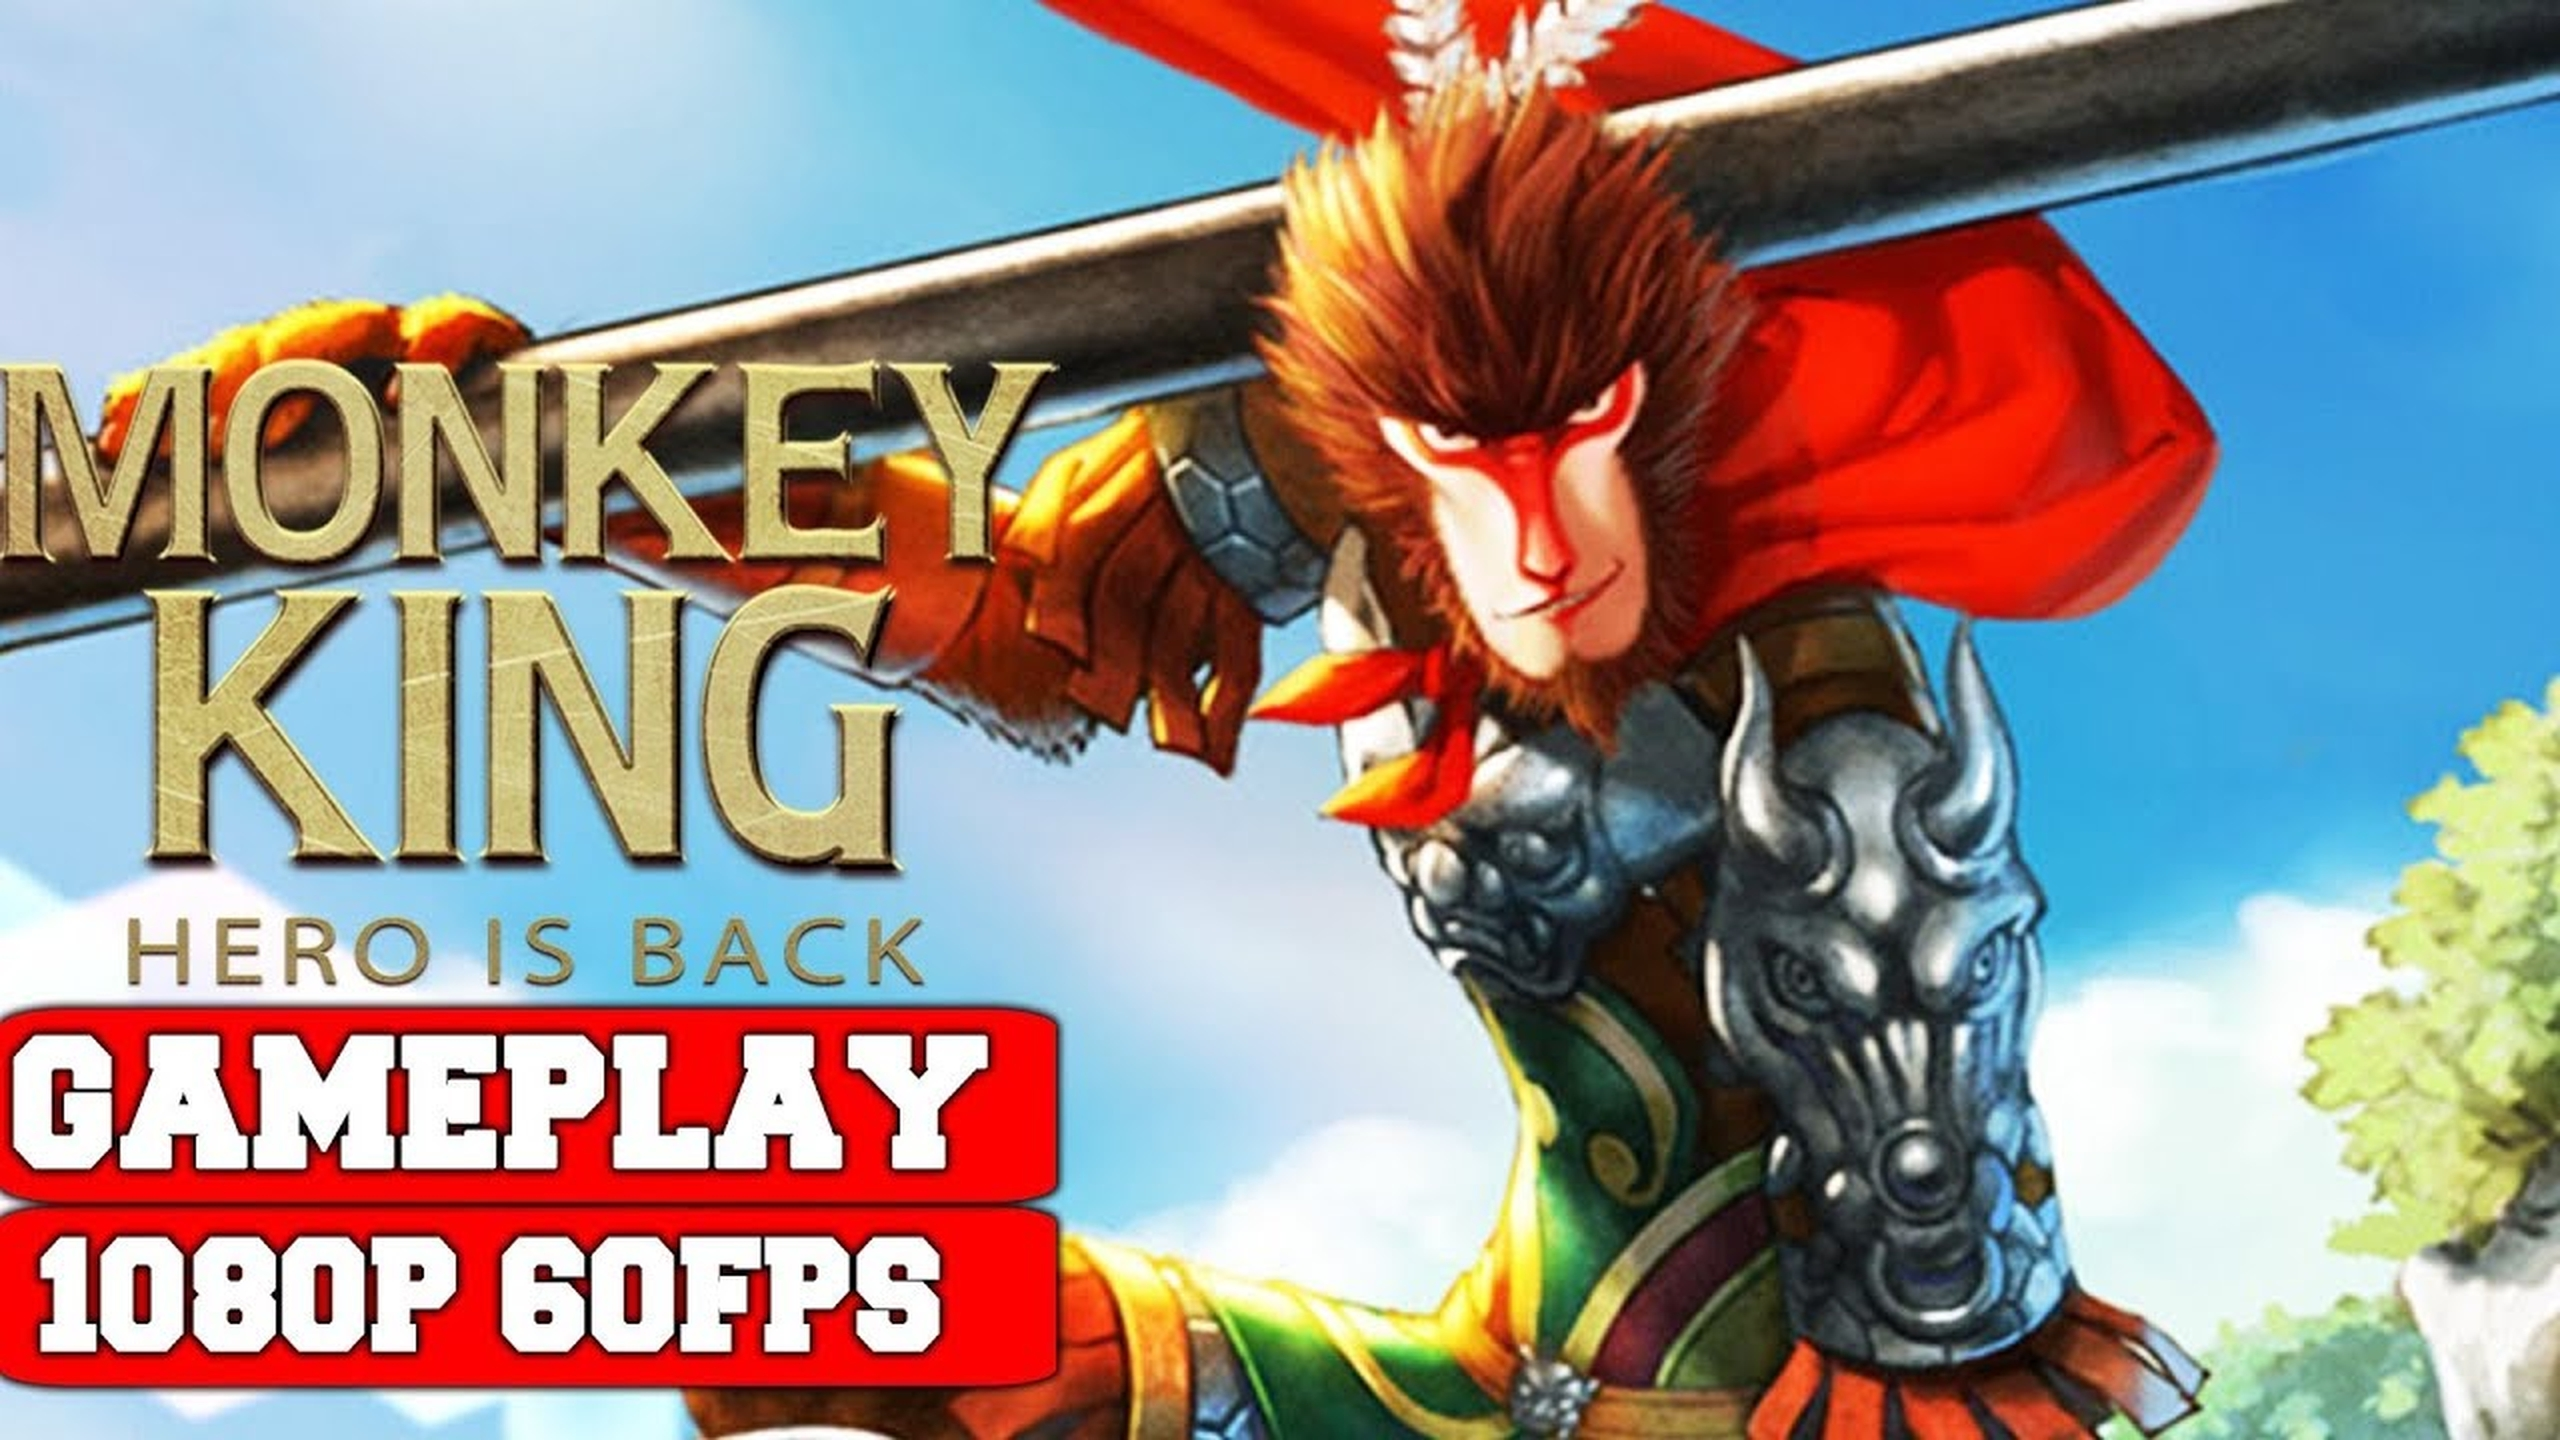 The The Monkey King (GamePlay) Online Slot Demo Game by Gameplay Interactive